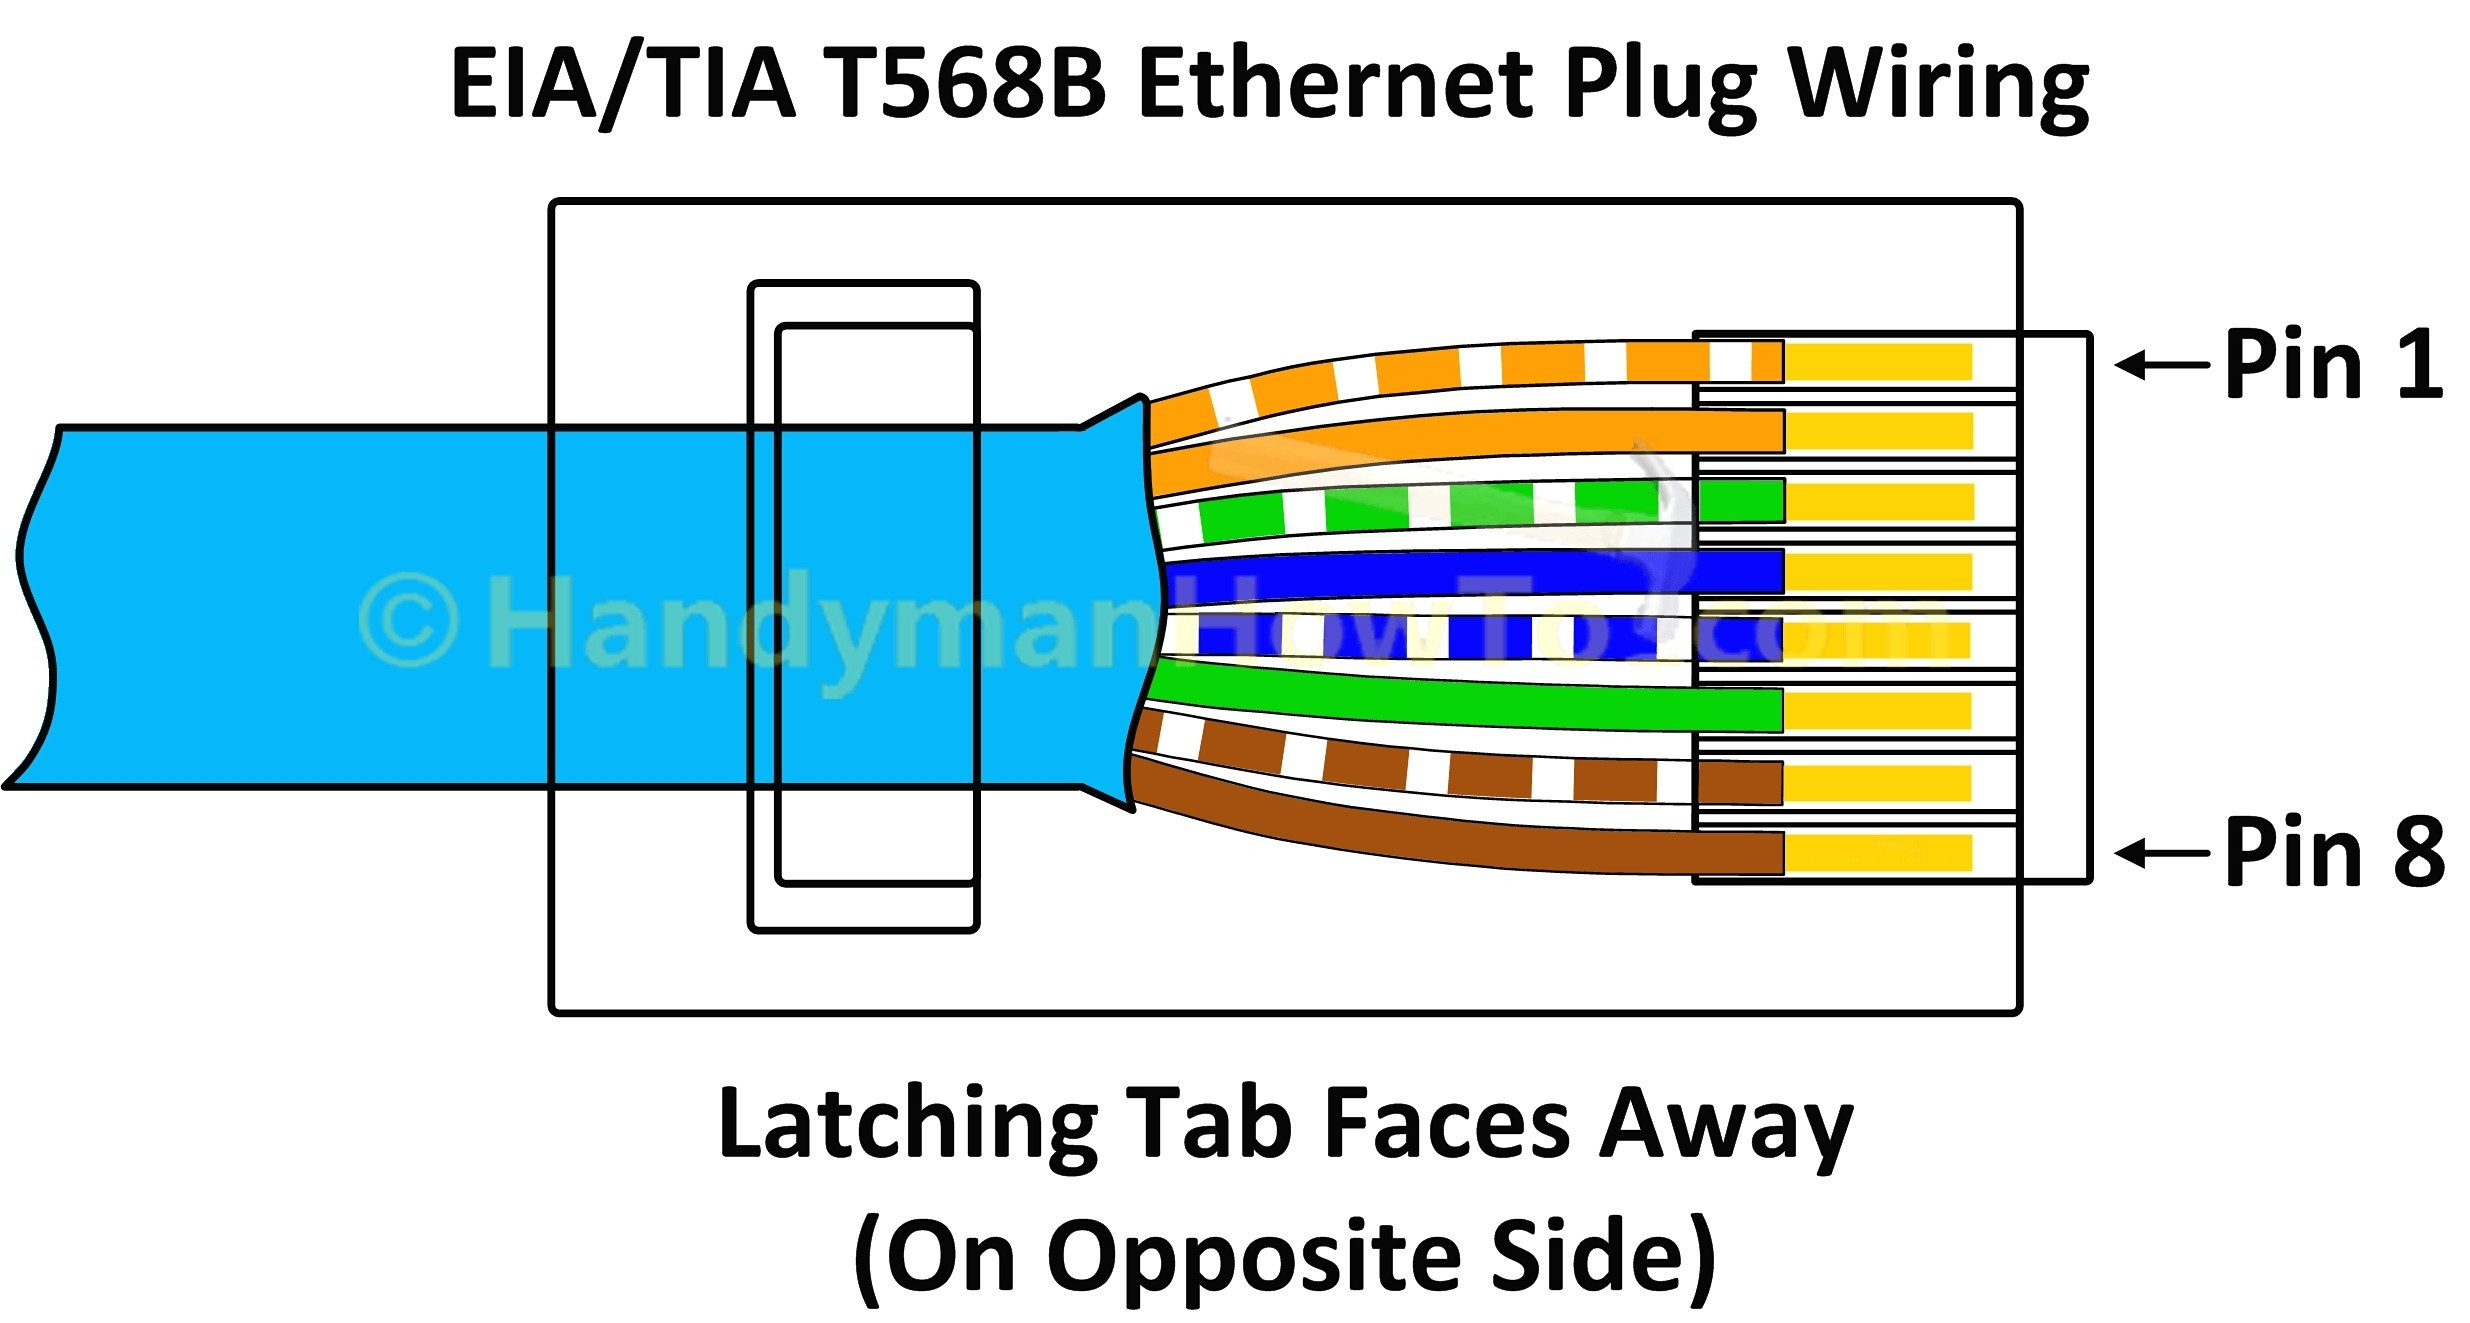 Cat 5 Wiring Diagram Td Just Another Wiring Data Volvo XC70 Wiring Diagrams  Ideal Cat 5 Wiring Diagram